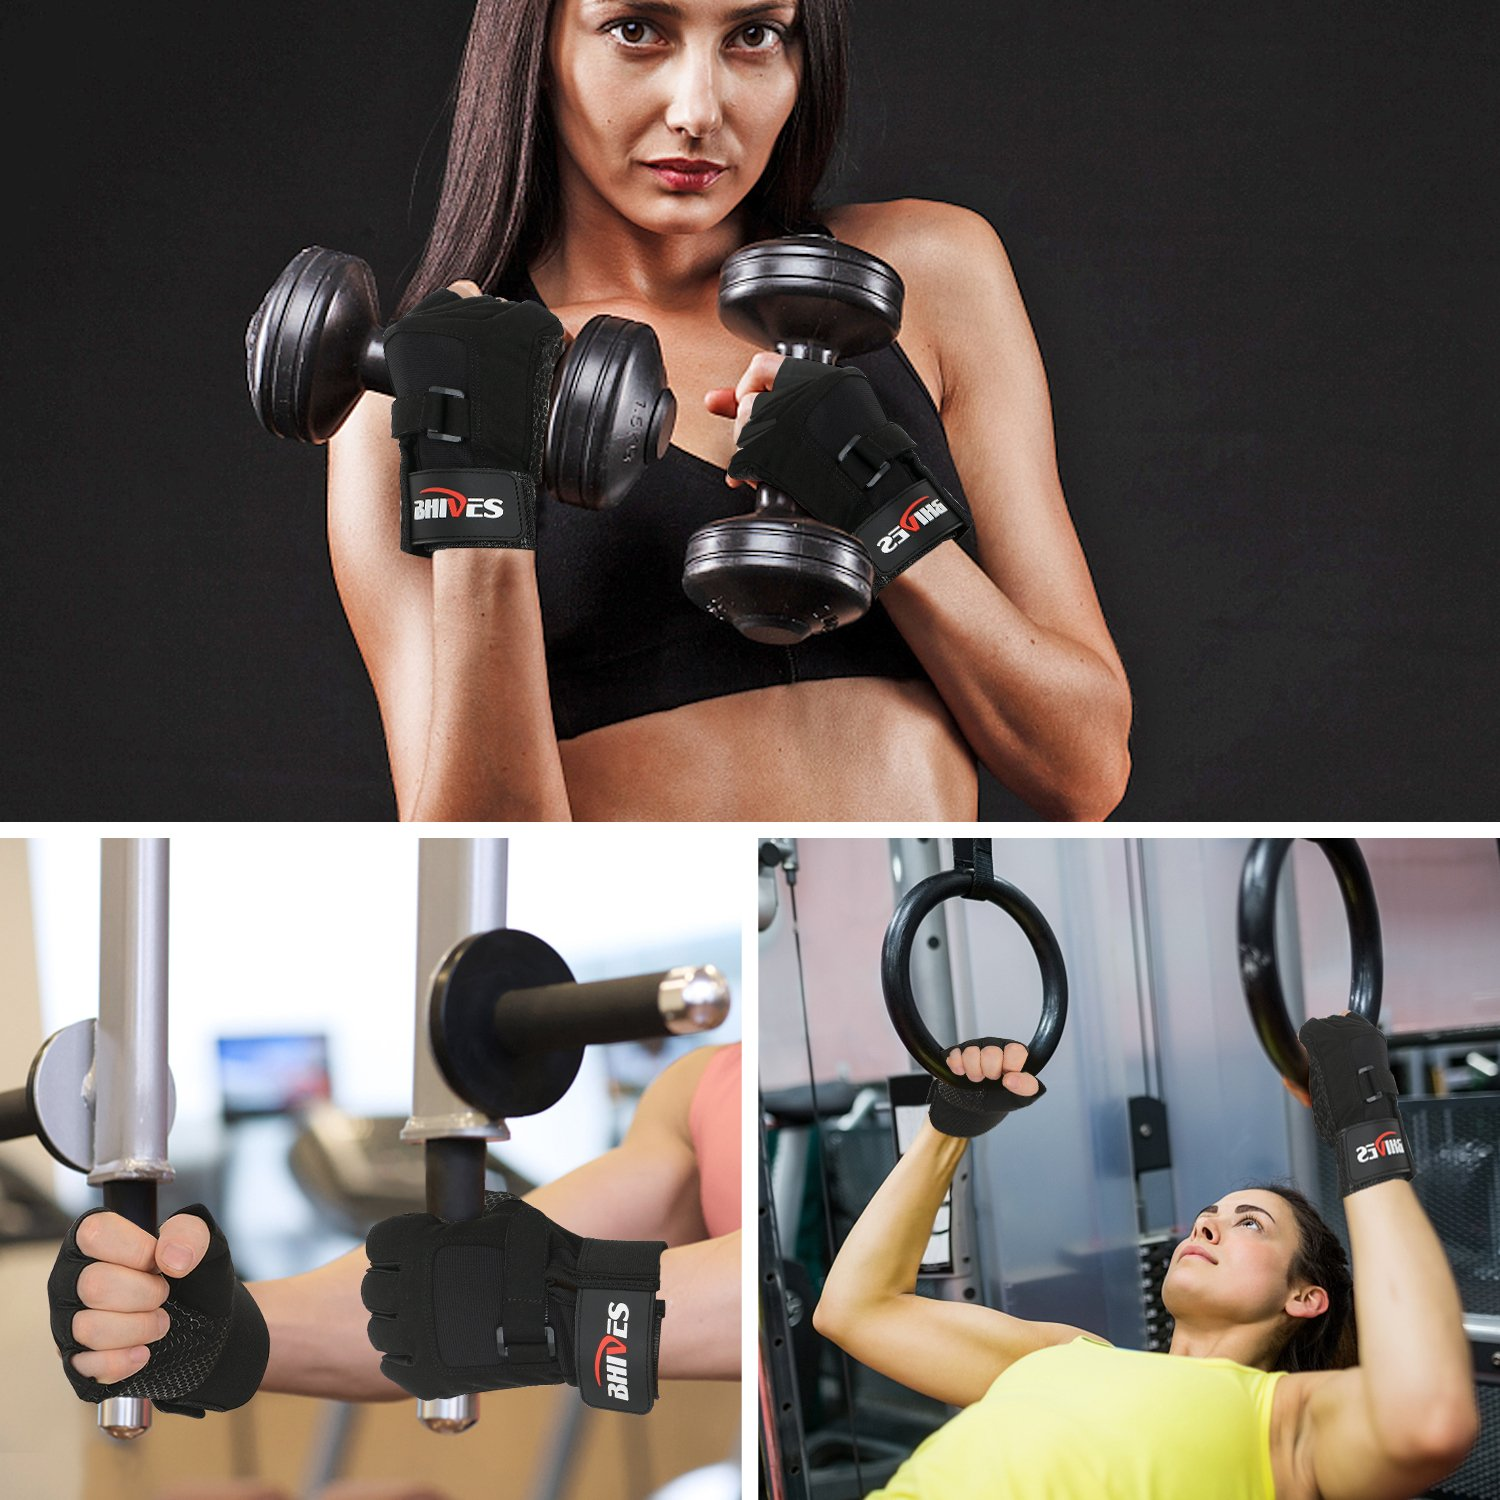 BHIVES Workout Weight Lifting Gym Gloves Full Palm Protection /& Extra Grip Weight Lifting Training Fitness Exercise Men /& Women